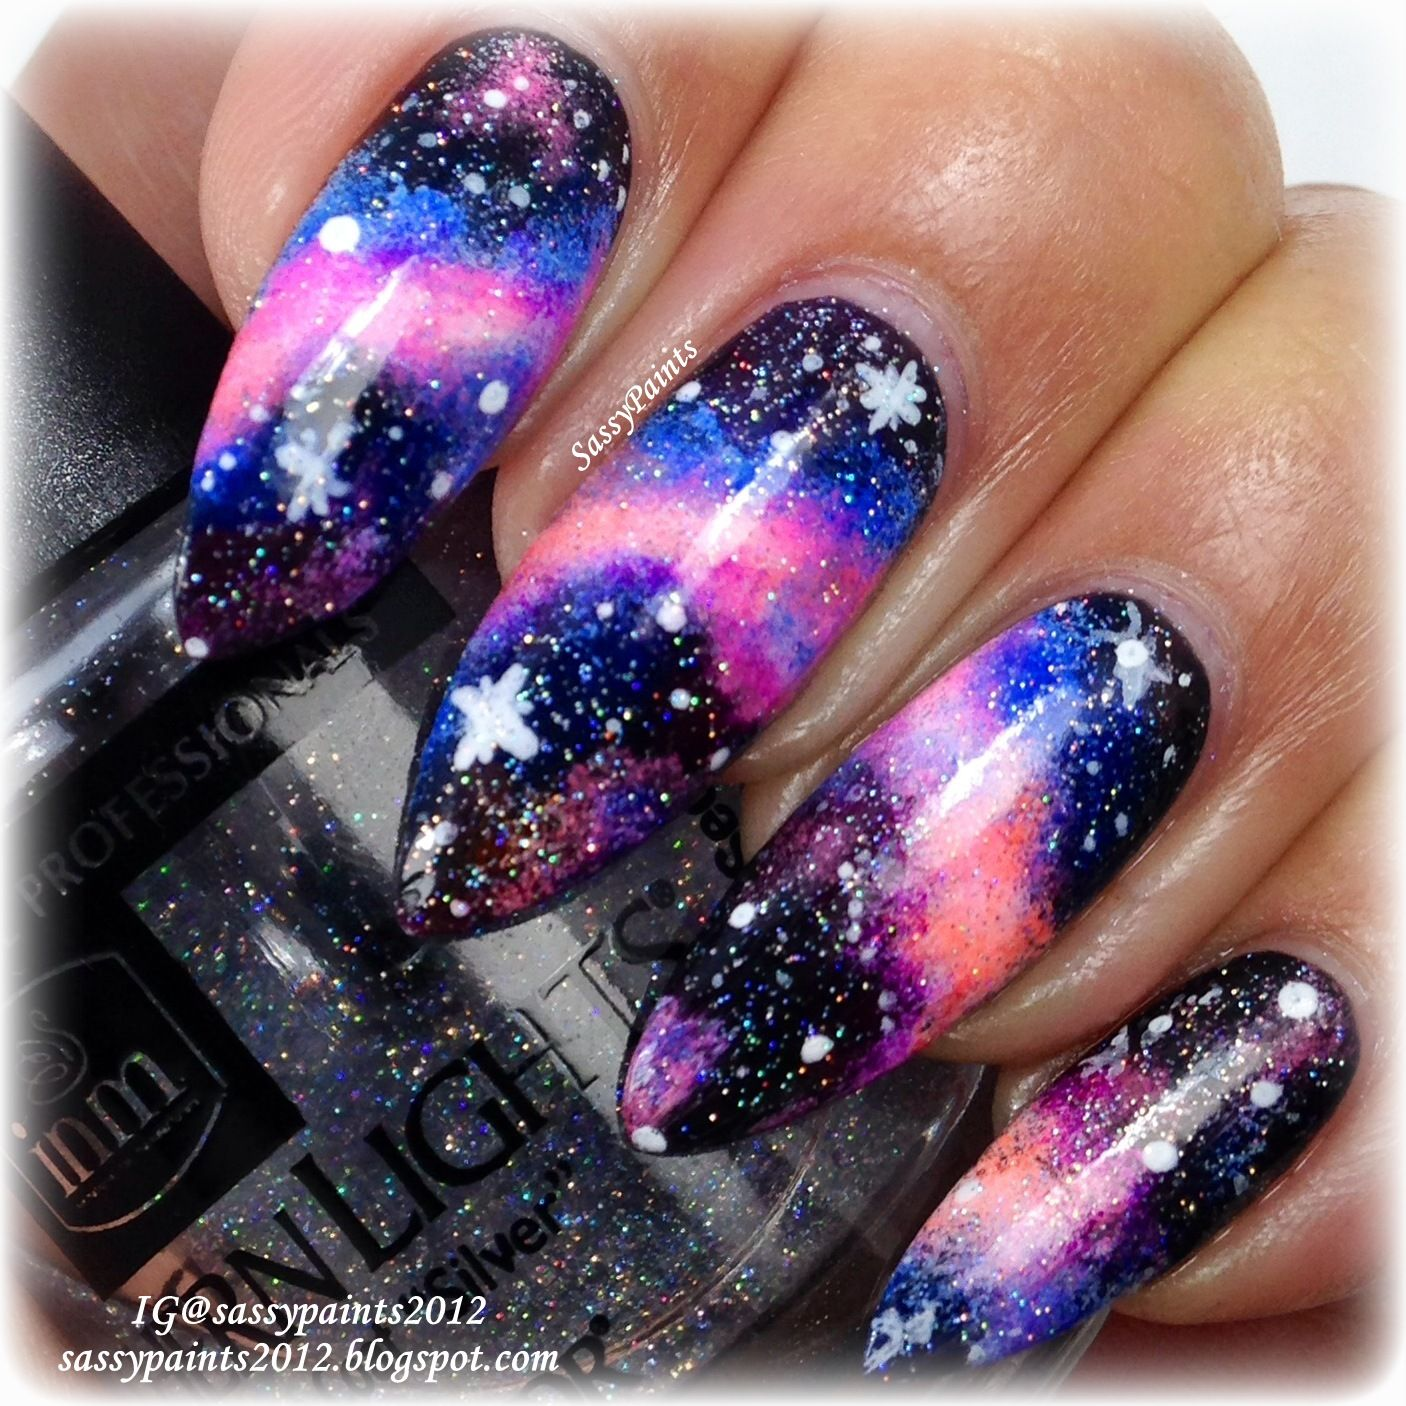 Sassy Paints Galaxy nails